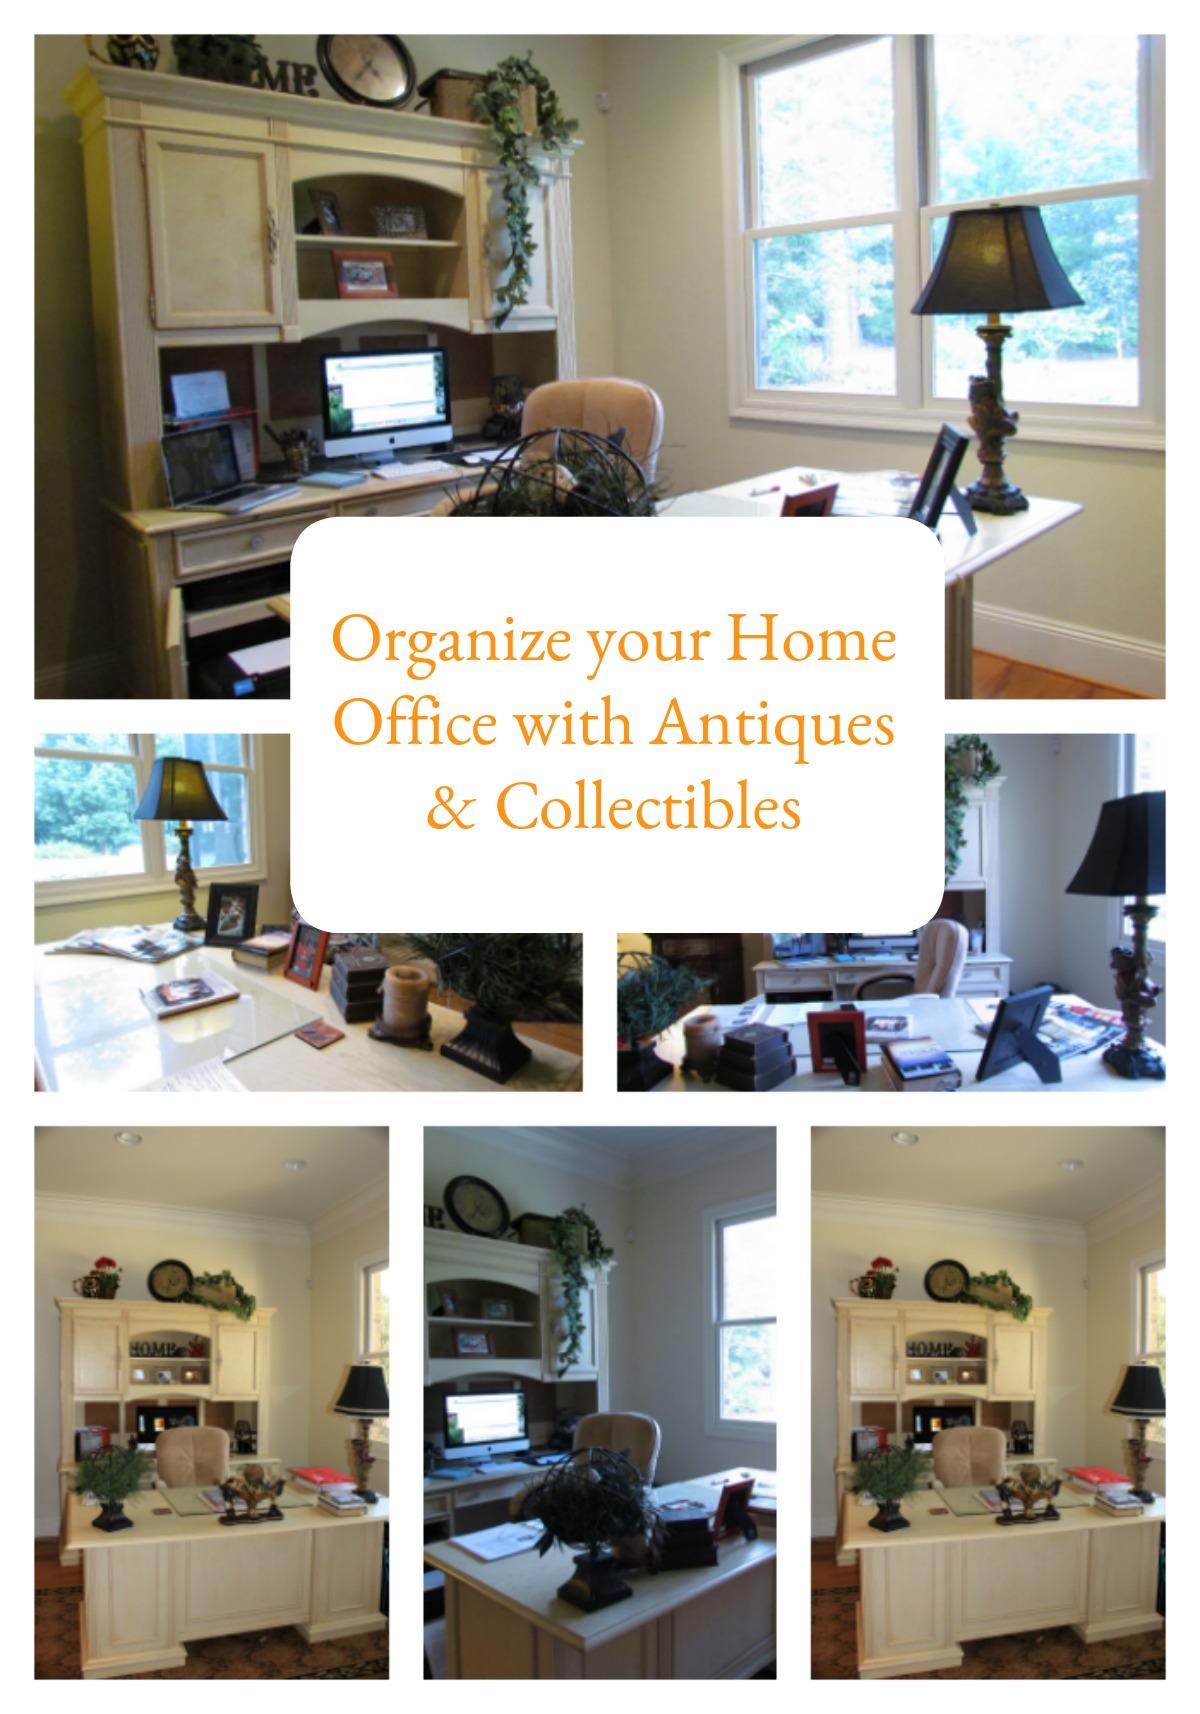 Organizing a Home Office Using Antiques & Collectibles